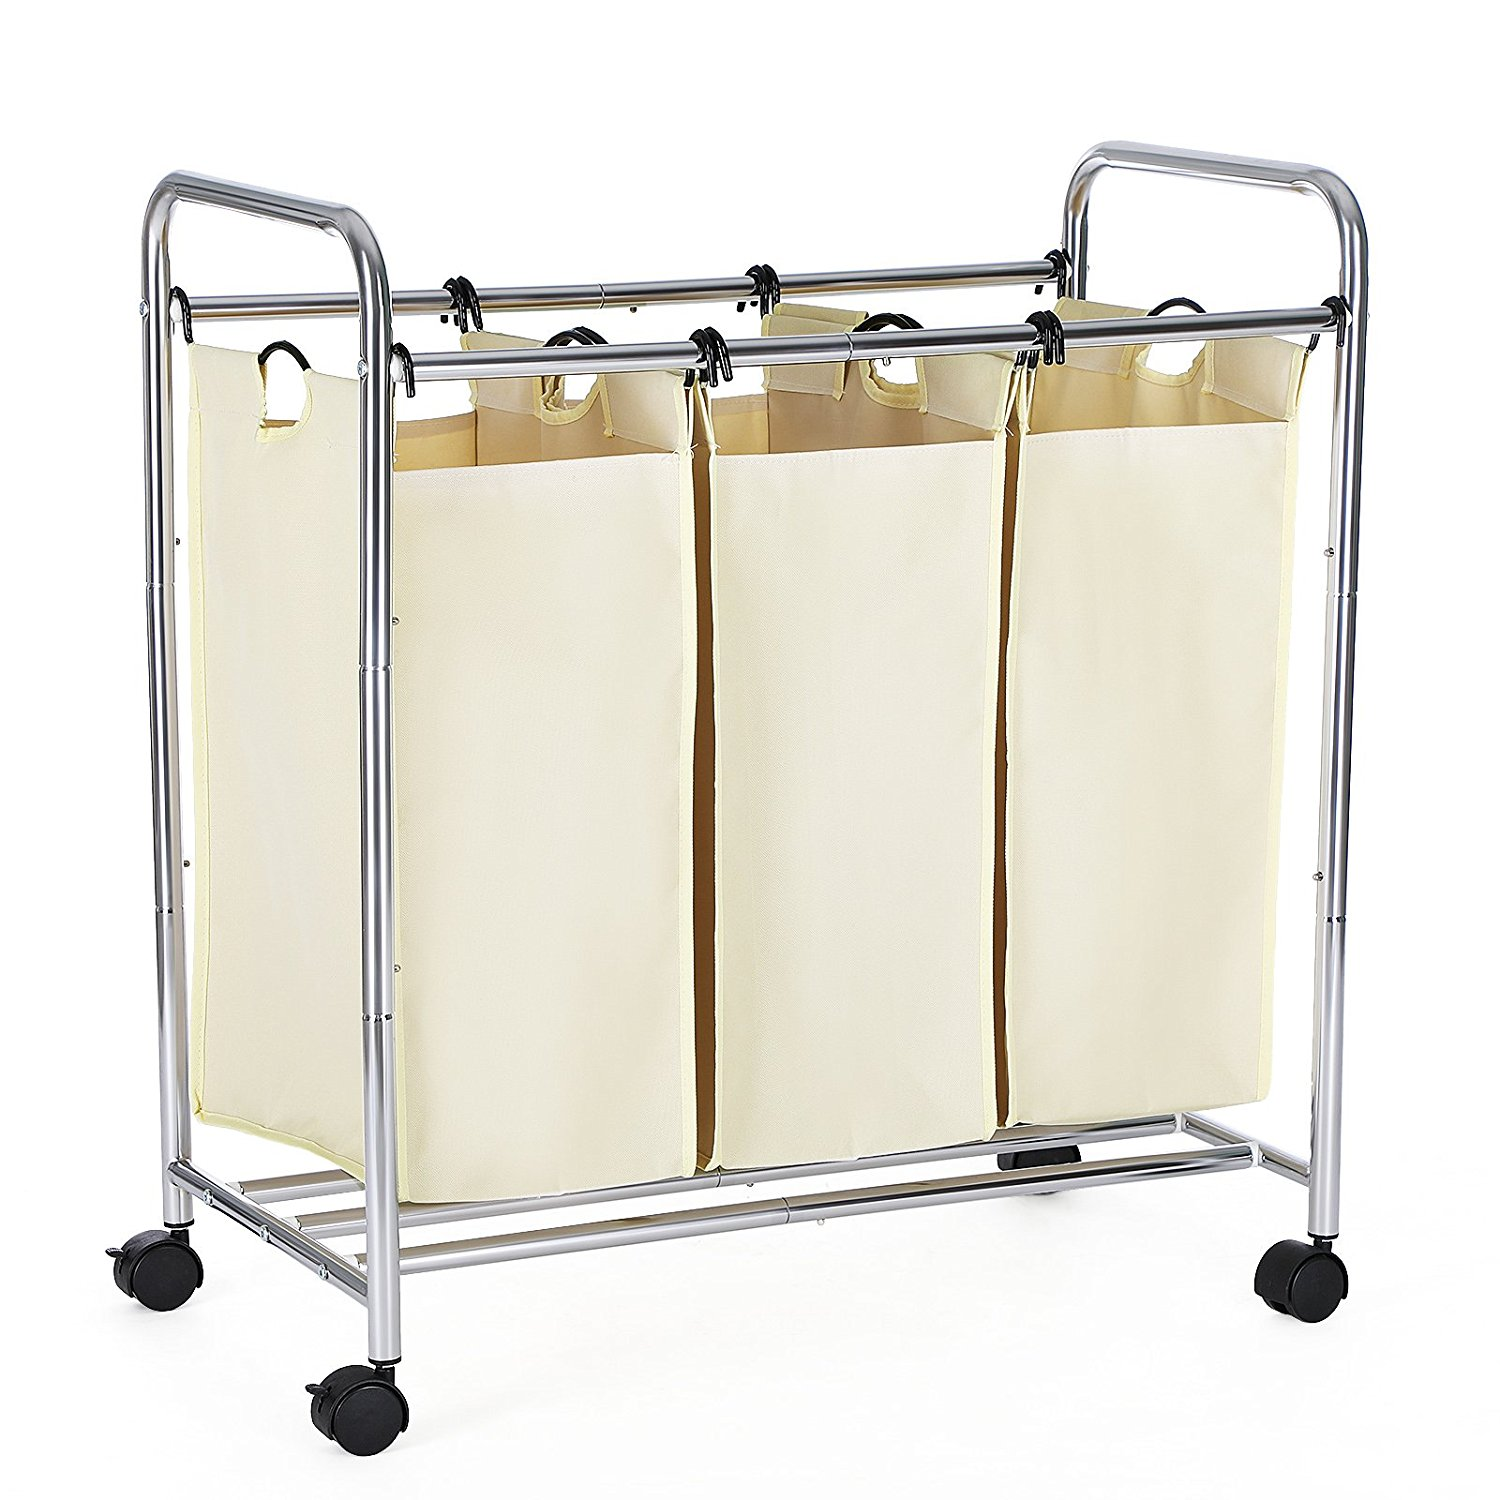 laundry cart on wheels laundry sorter cart hamper trolley with 3 removable bags 10536